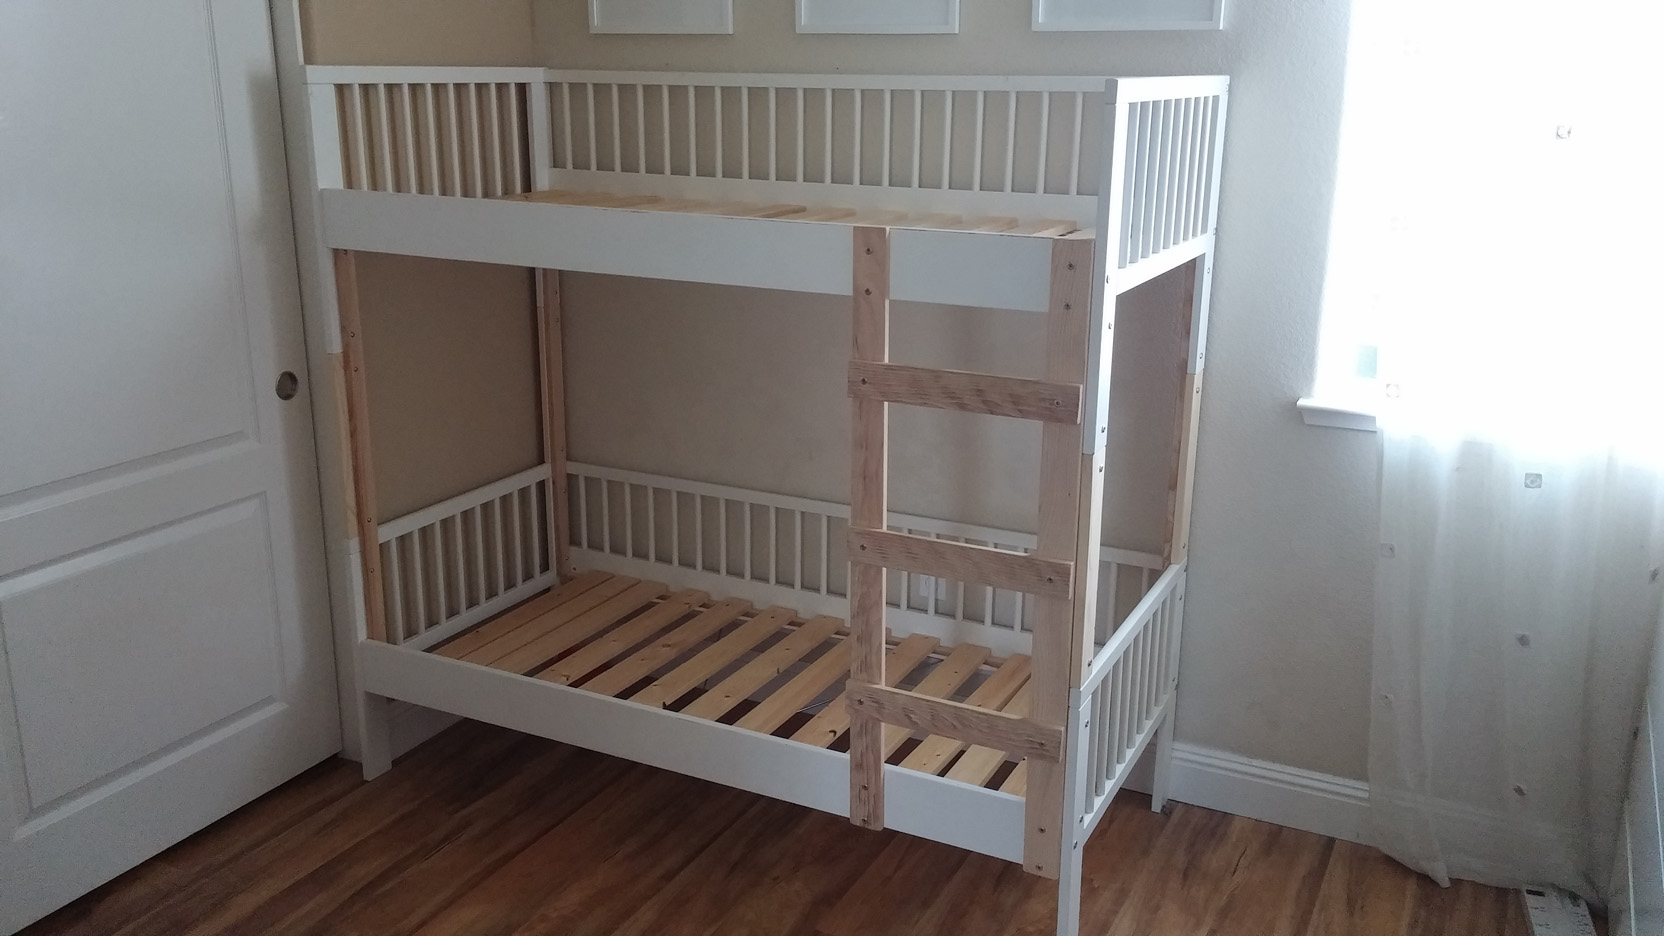 Wooden Bunk Bed Replacement Parts